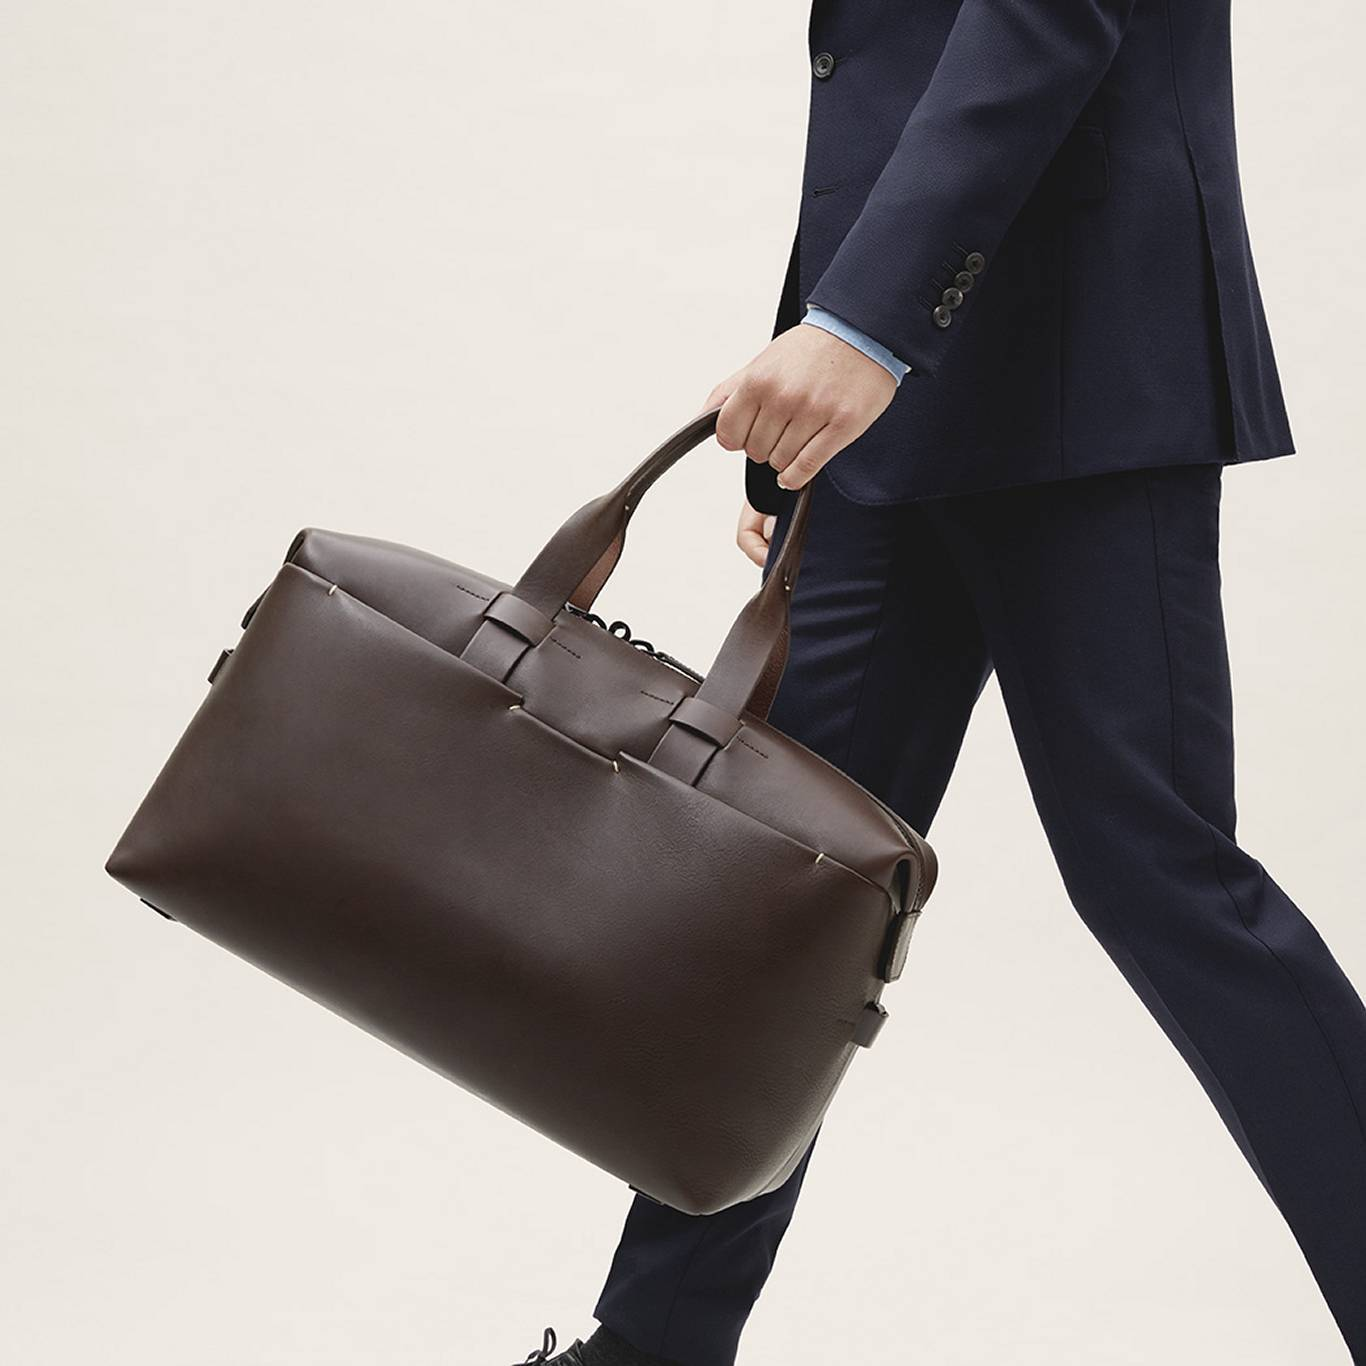 8faab0f378e1 Man with navy blue suit carrying Troubadour s brown leather weekend bag